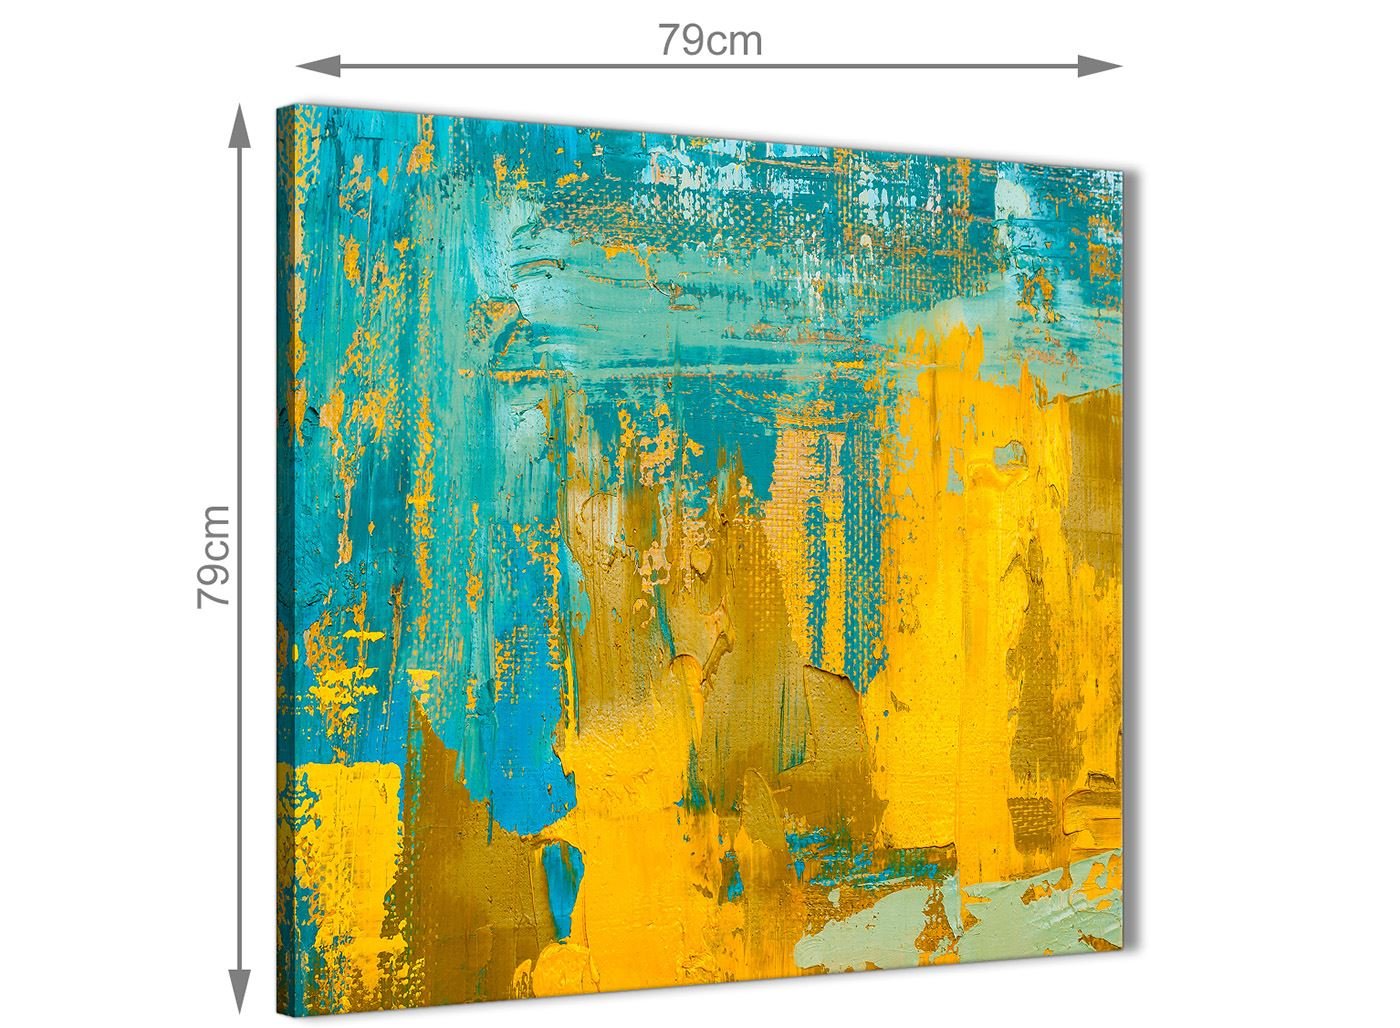 Mustard Yellow and Teal Turquoise Abstract Dining Room Canvas Wall Art Decor